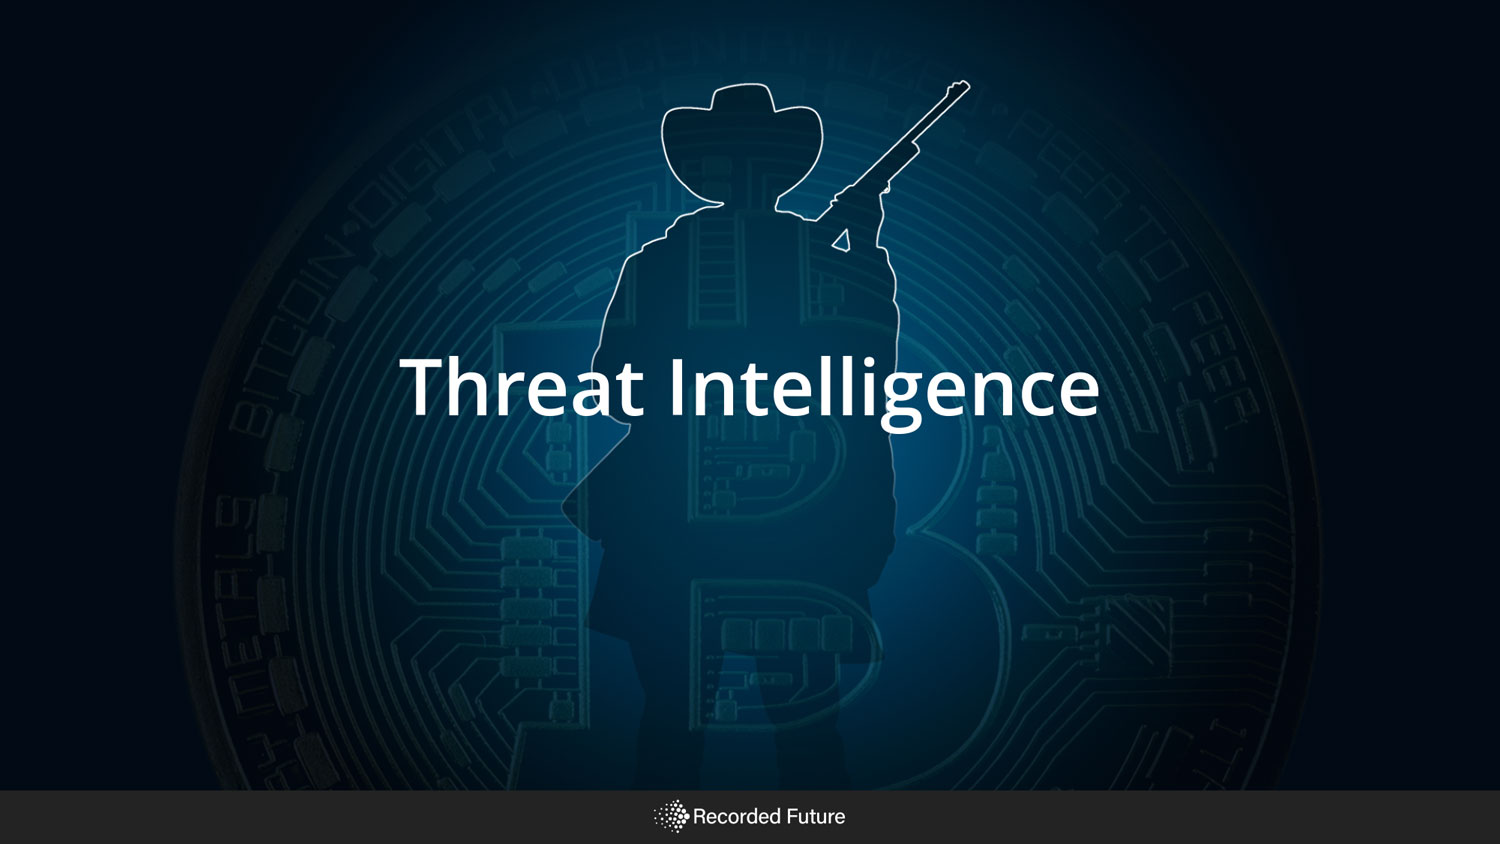 Threat Intel presentation